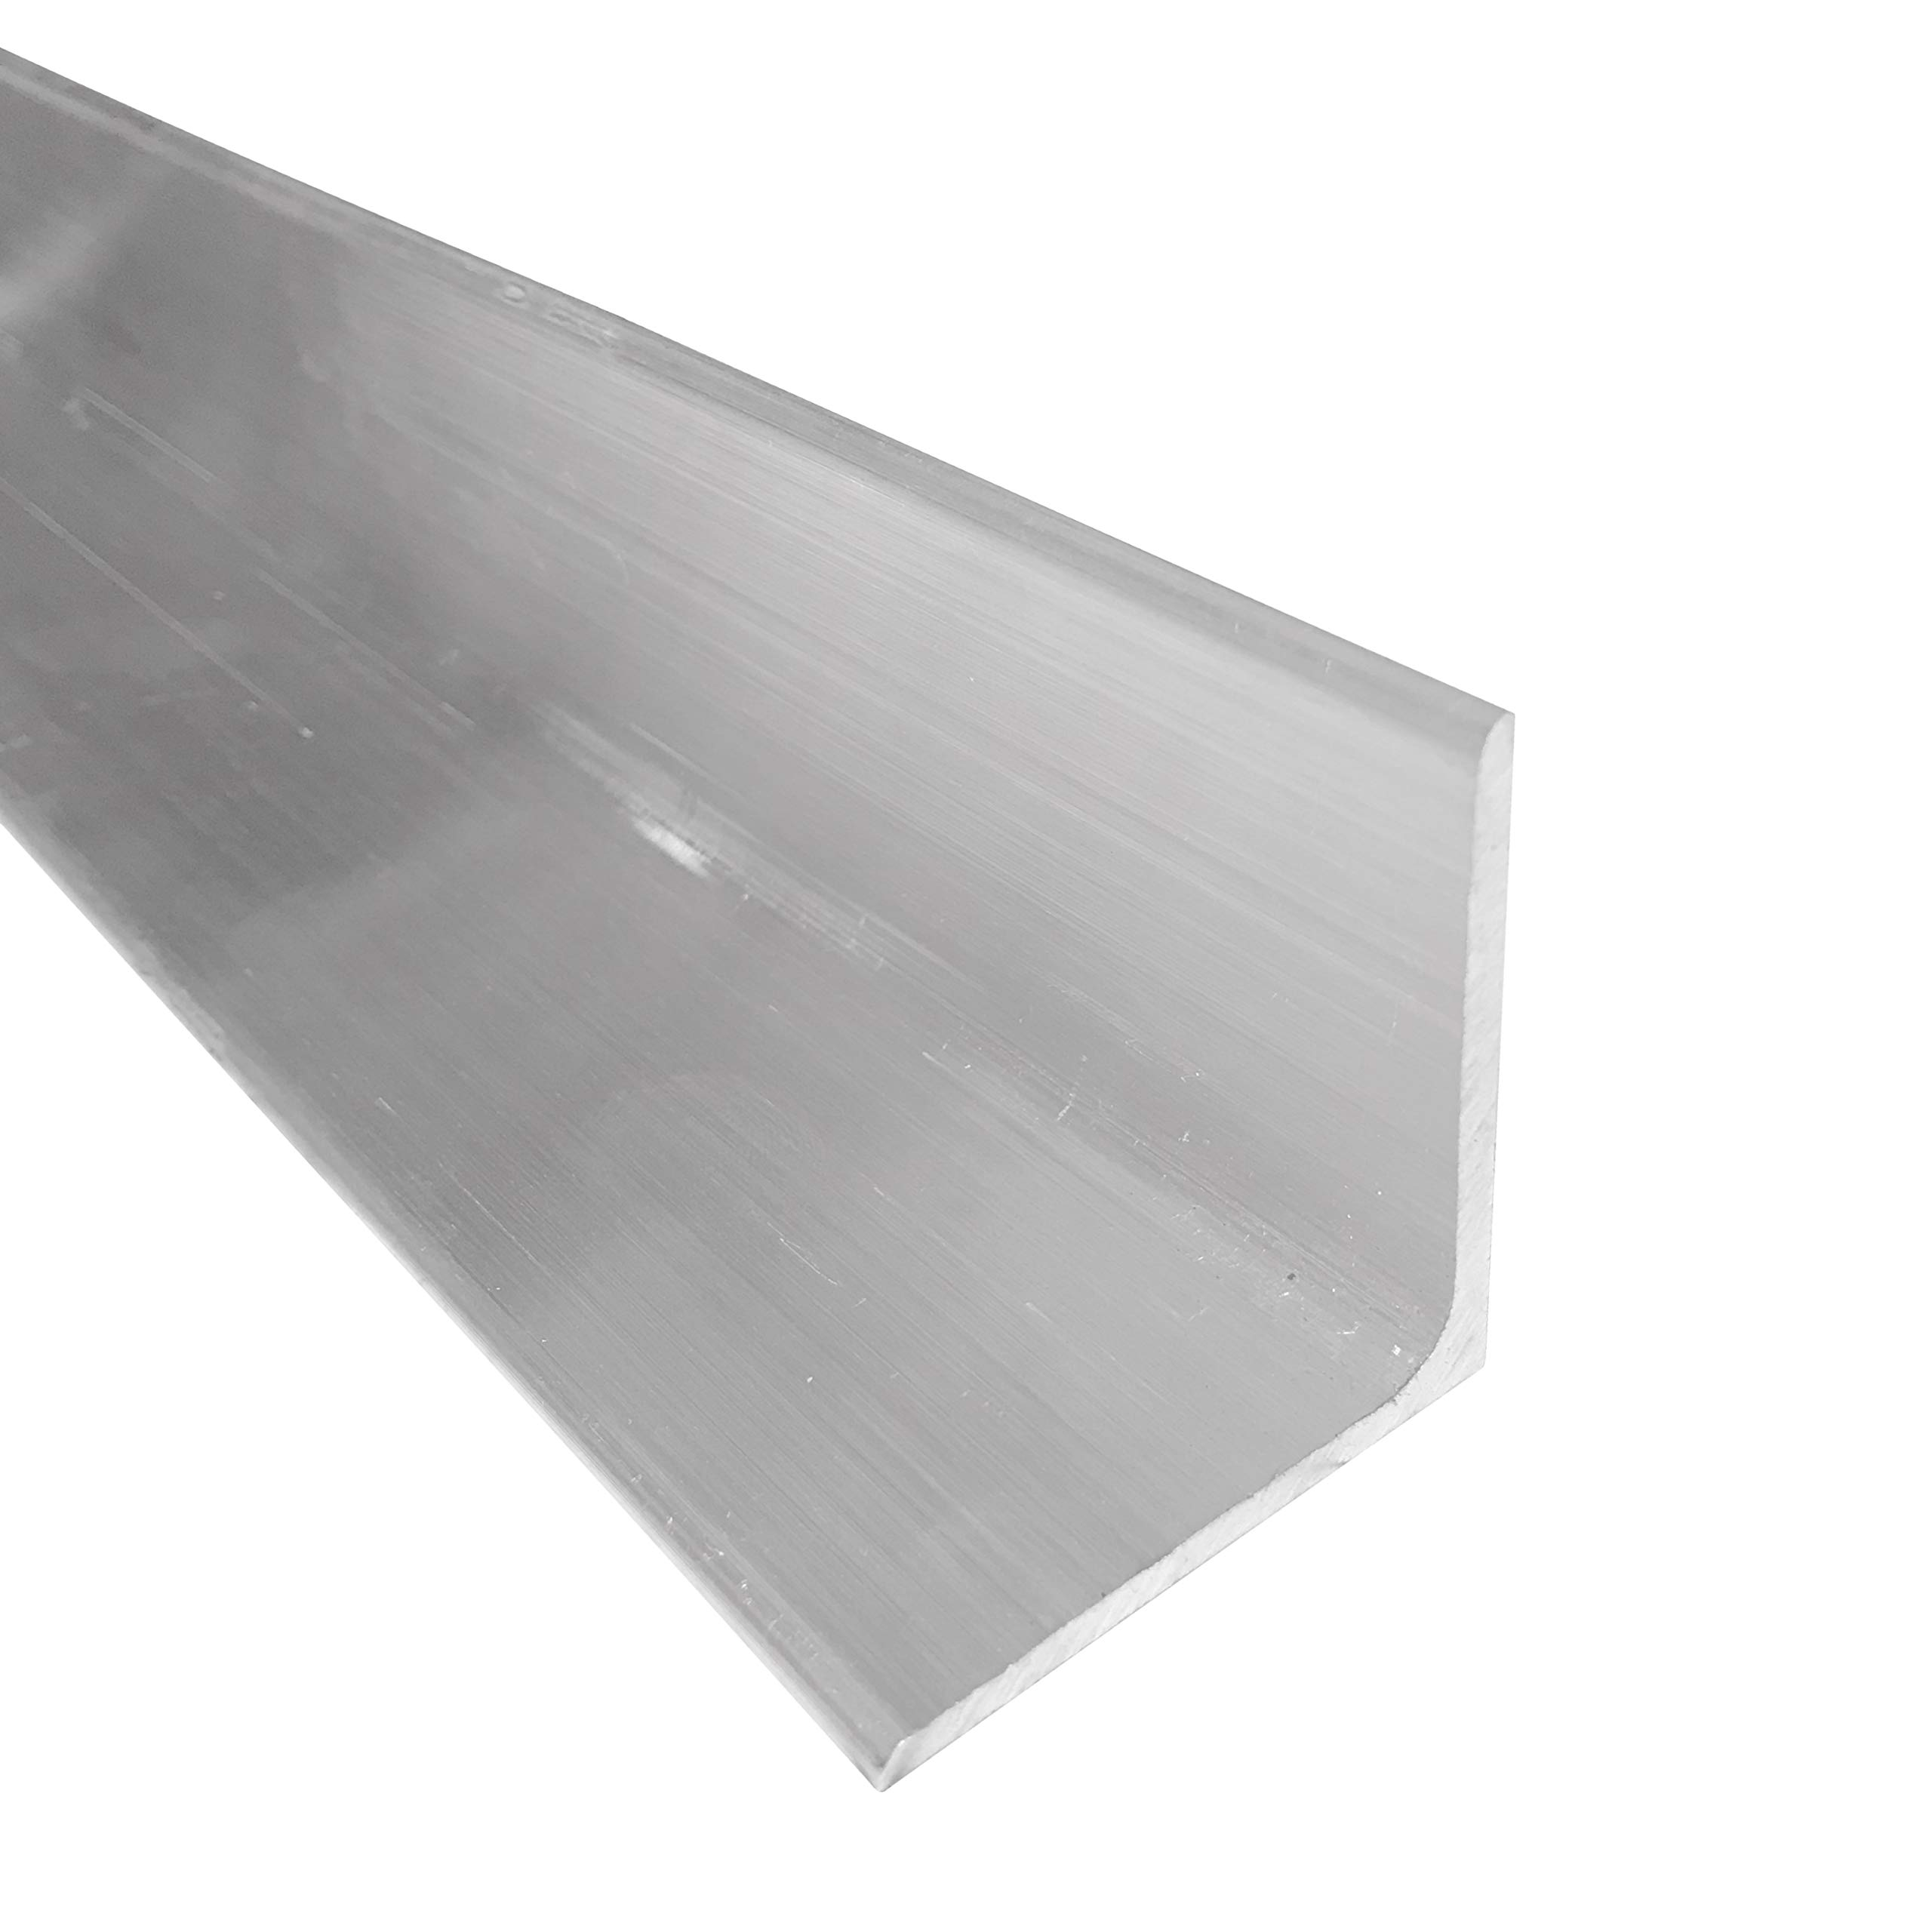 1-1/2'' x 1-1/2'' Aluminum Angle 6061, 12'' Length, T6511 Mill Stock, 1/8'' Thick by Remington Industries